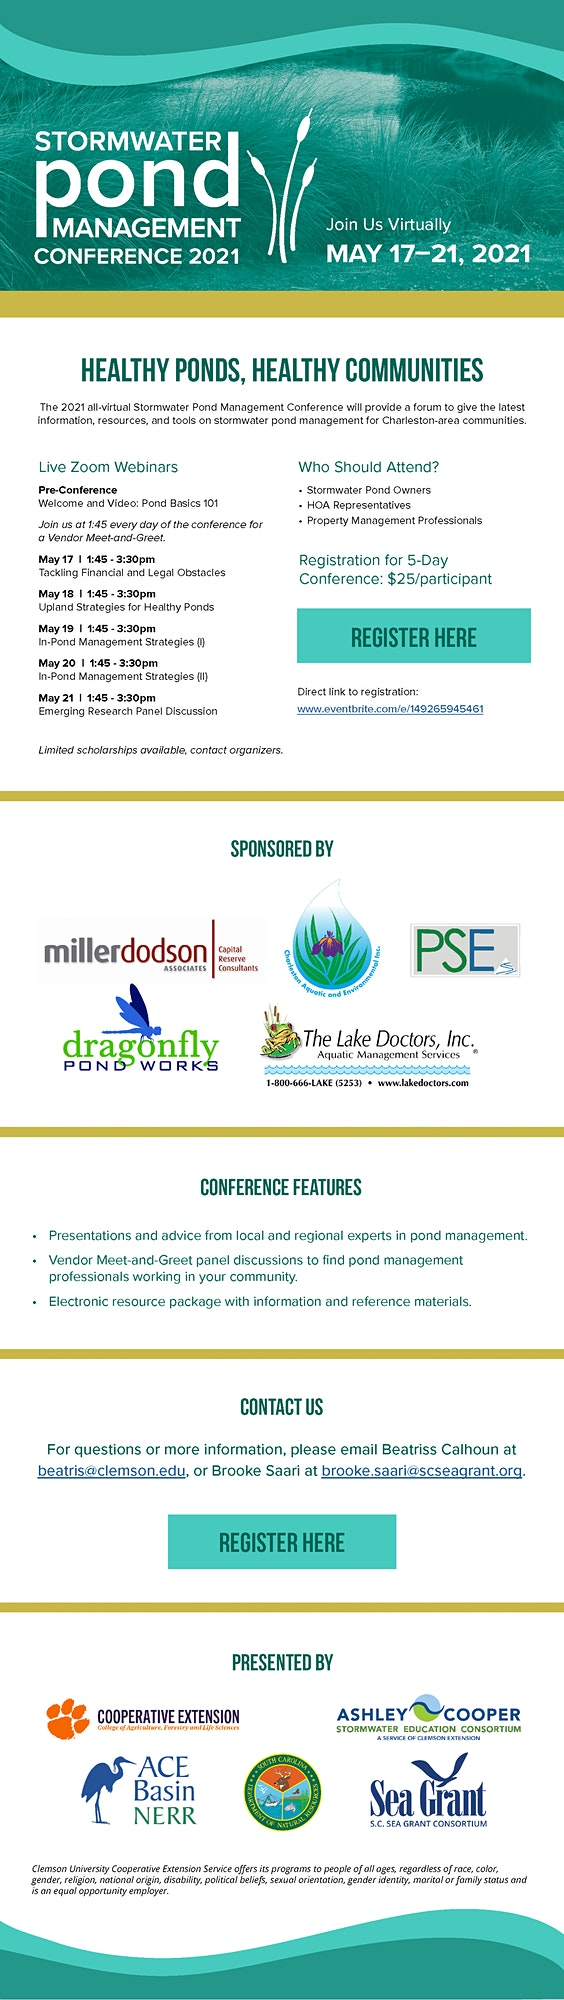 2021 Charleston Area Stormwater Pond Management Conference image